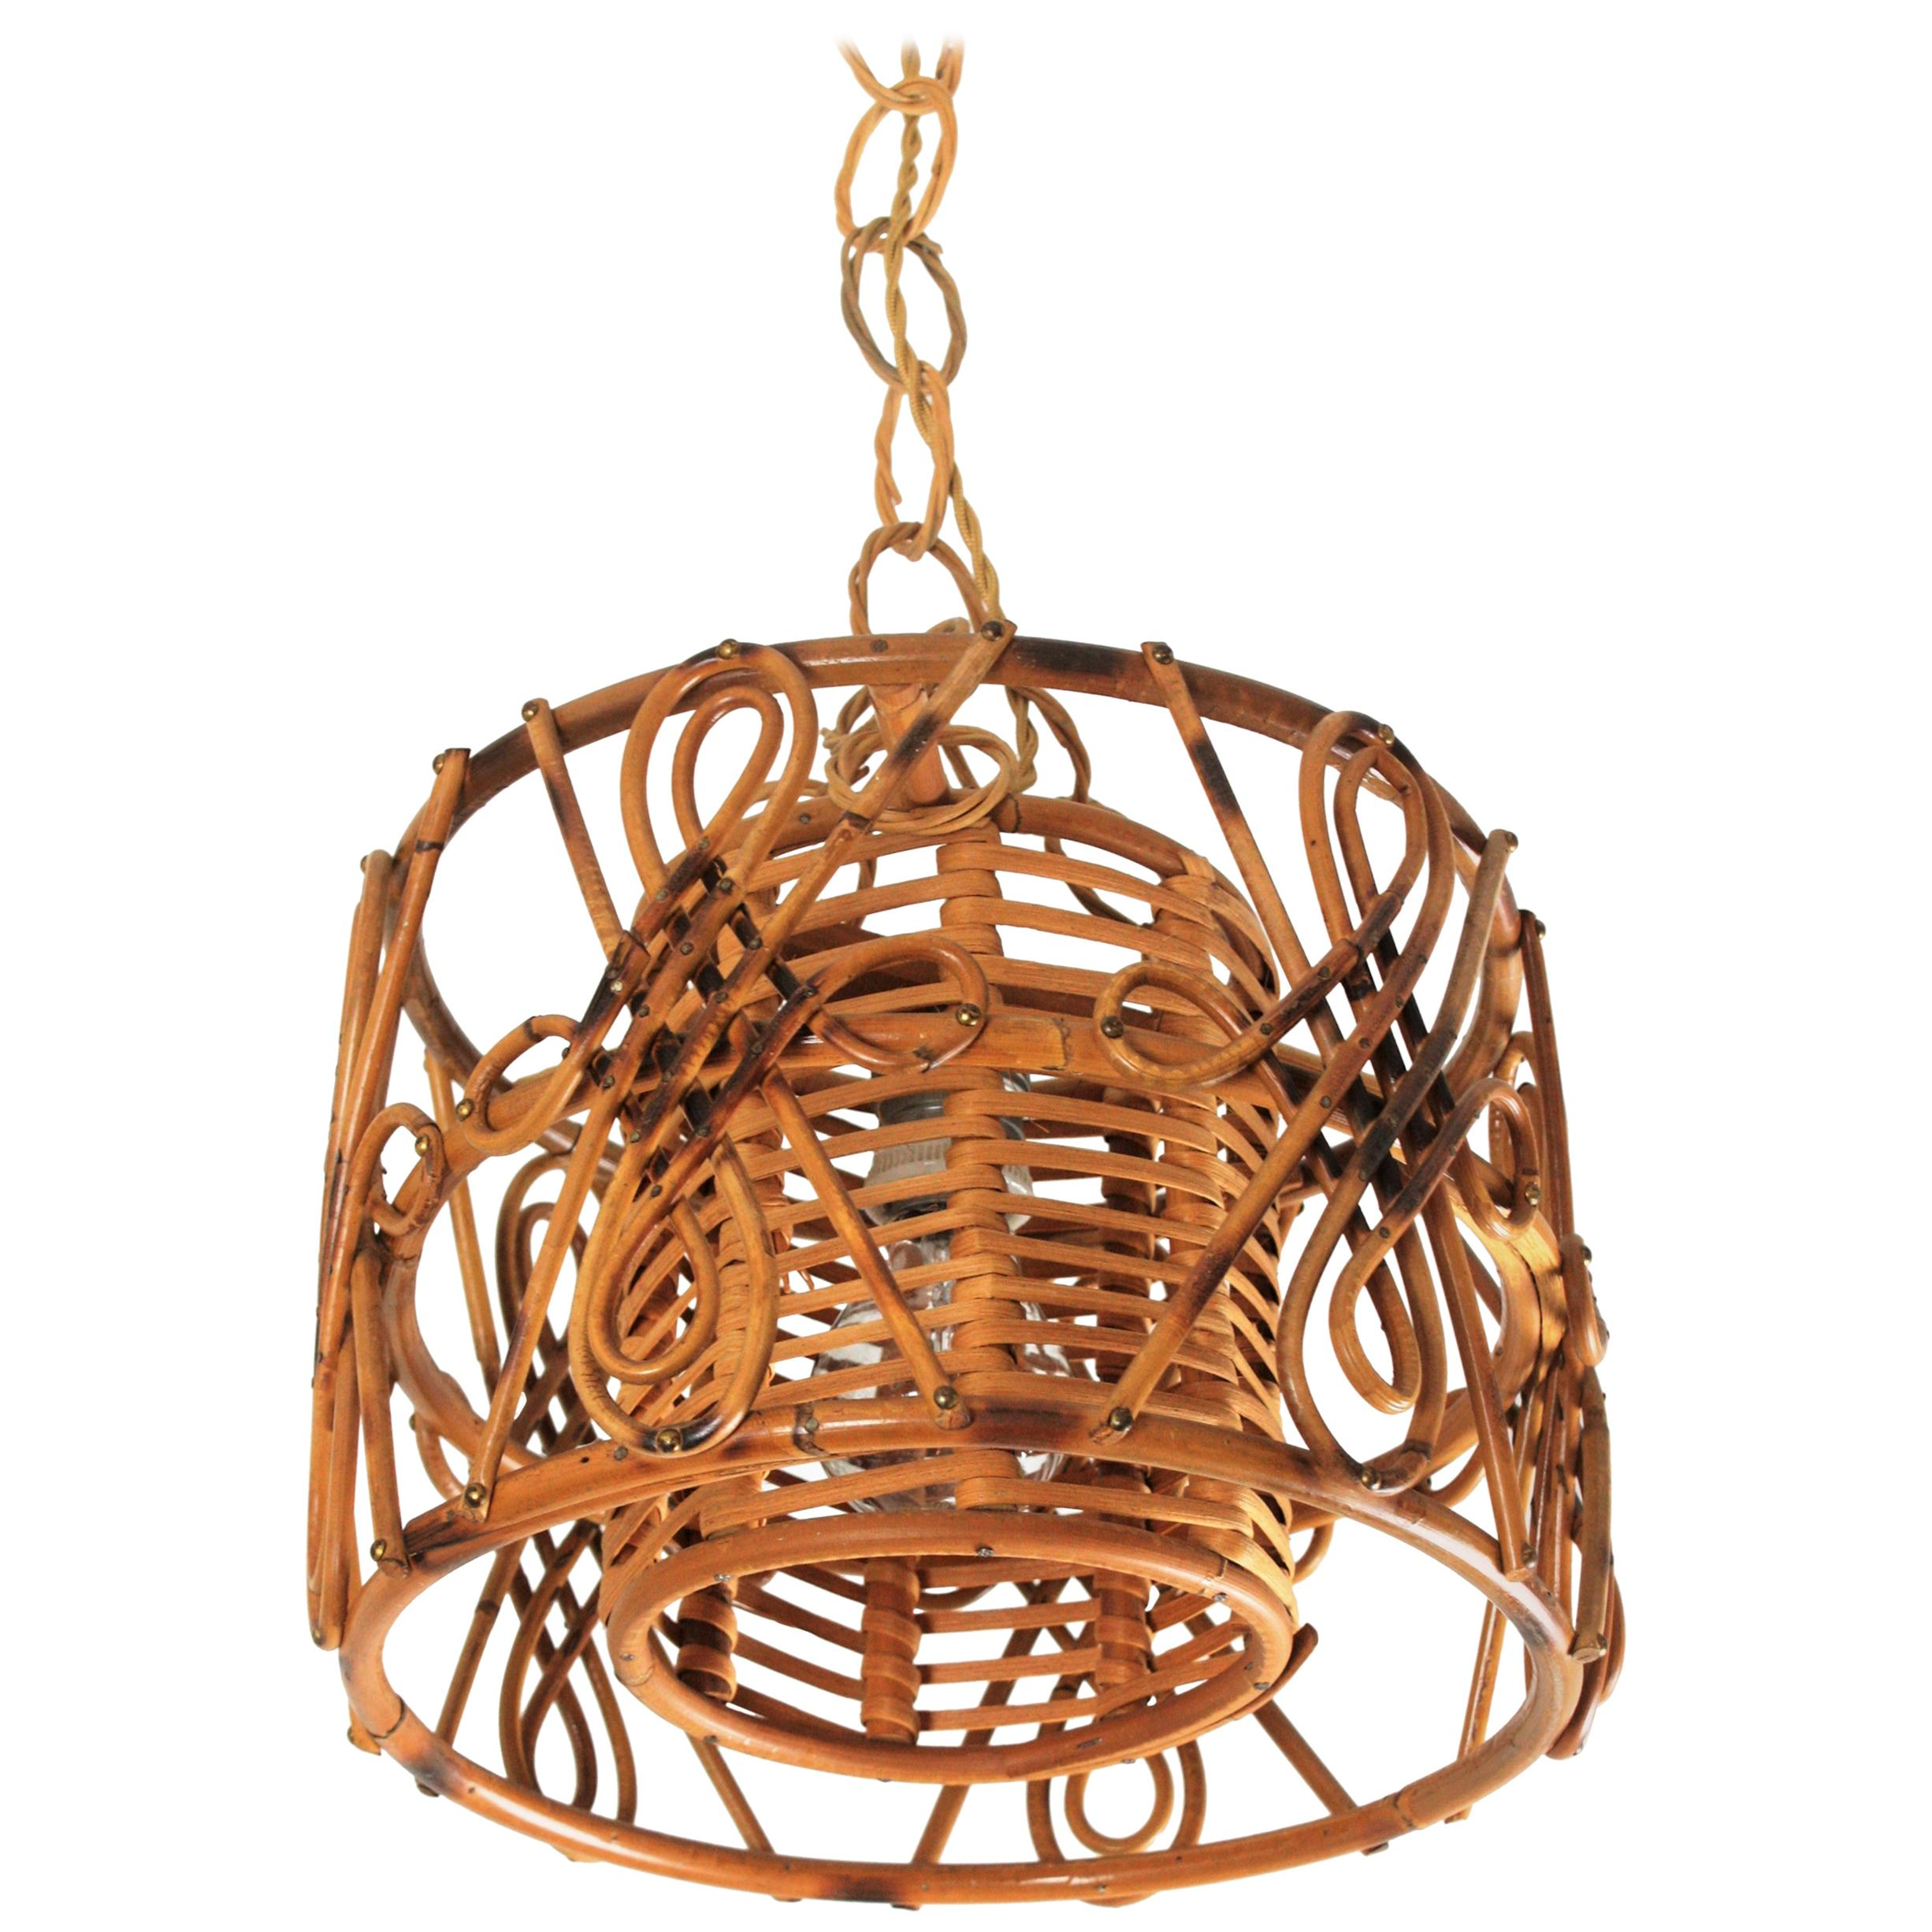 Rattan Drum Form Pendant Hanging Light with Chinoiserie Accents, France, 1950s